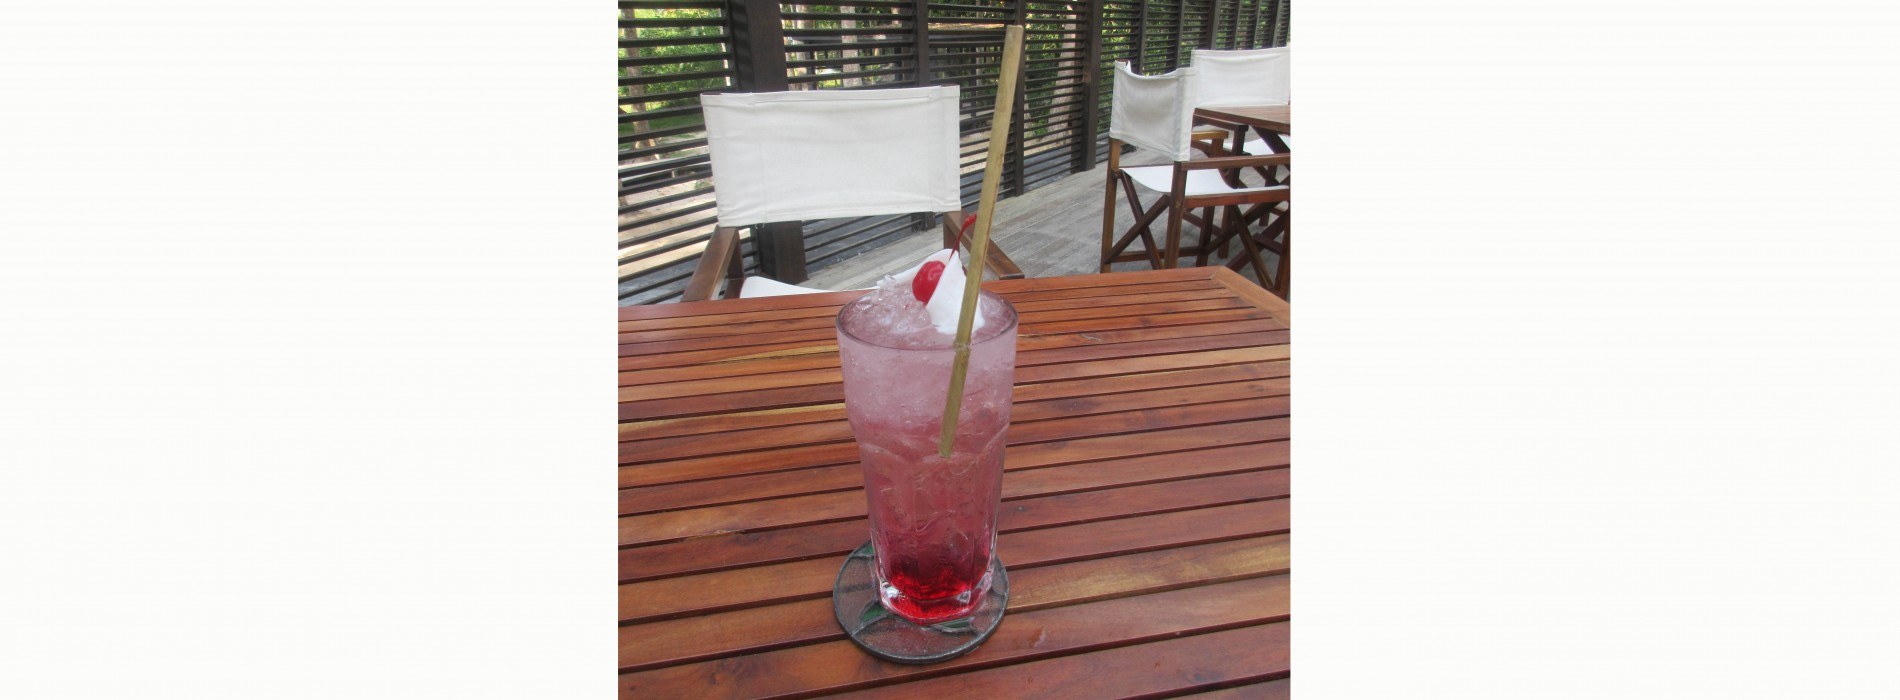 IHCL makes all its hotels free of plastic straws